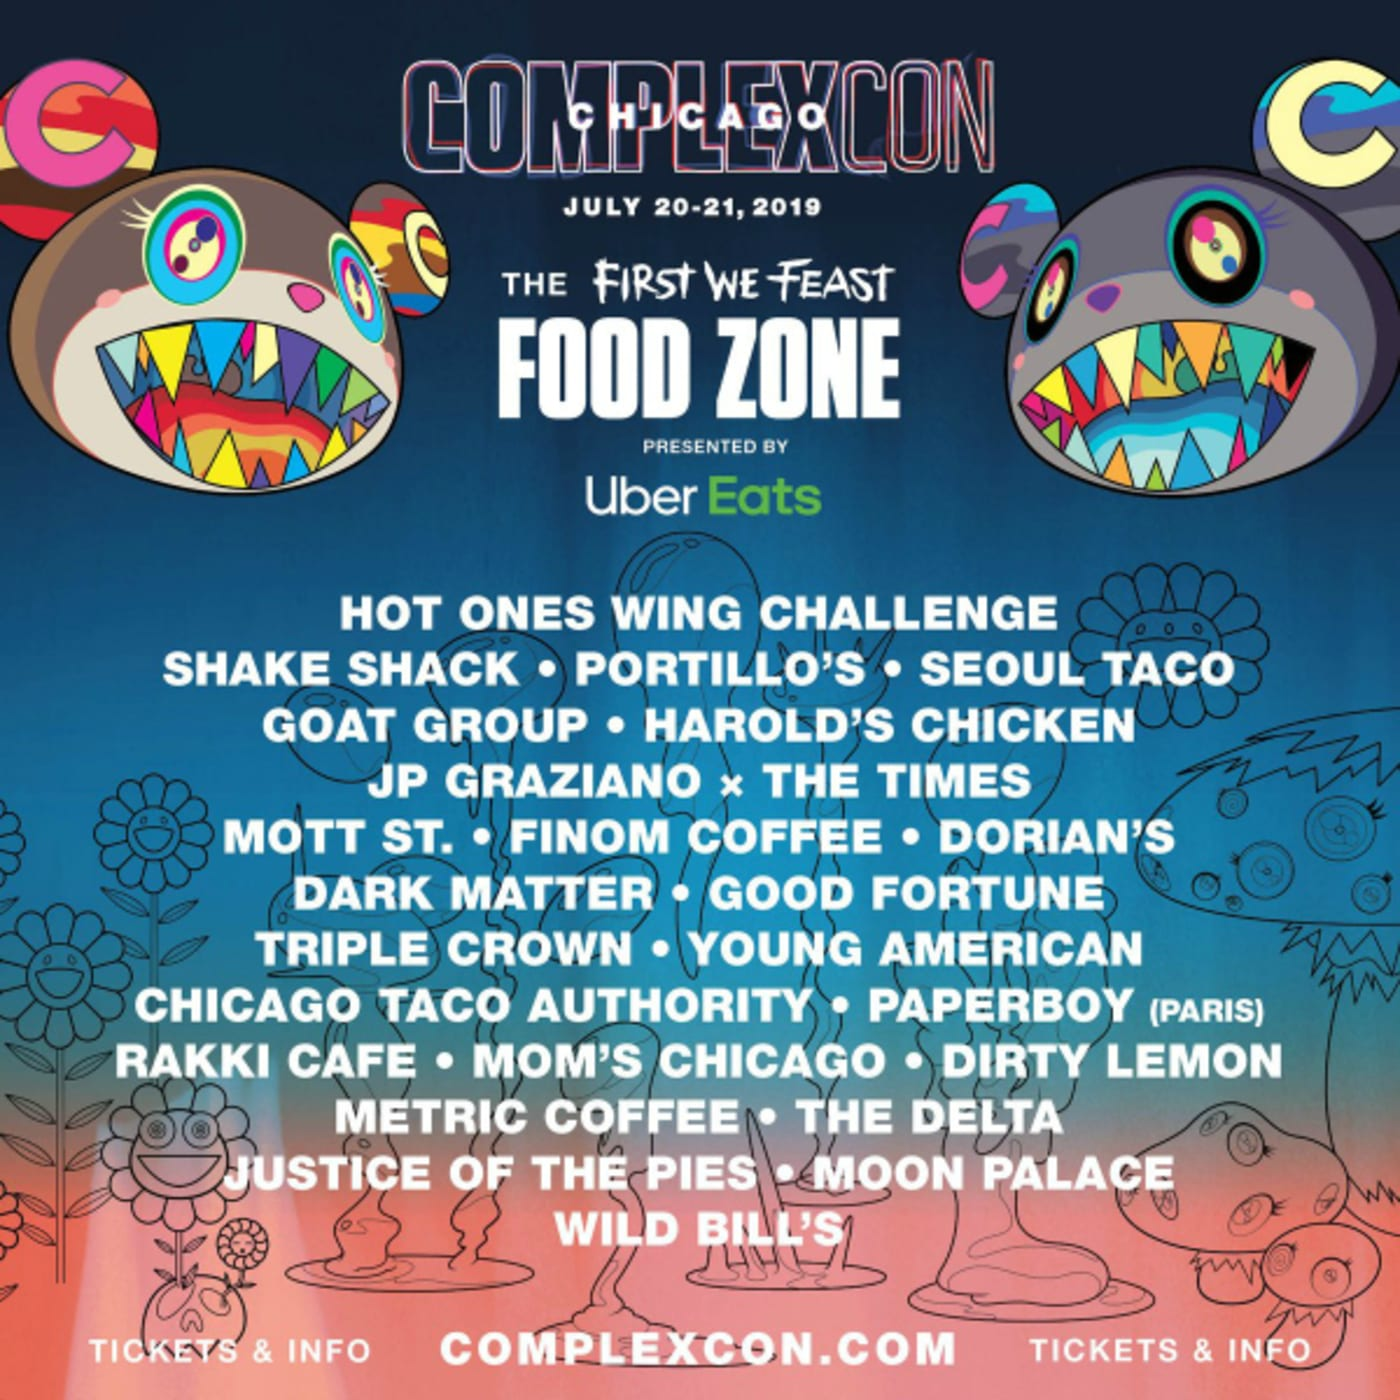 First We Feast Food Zone